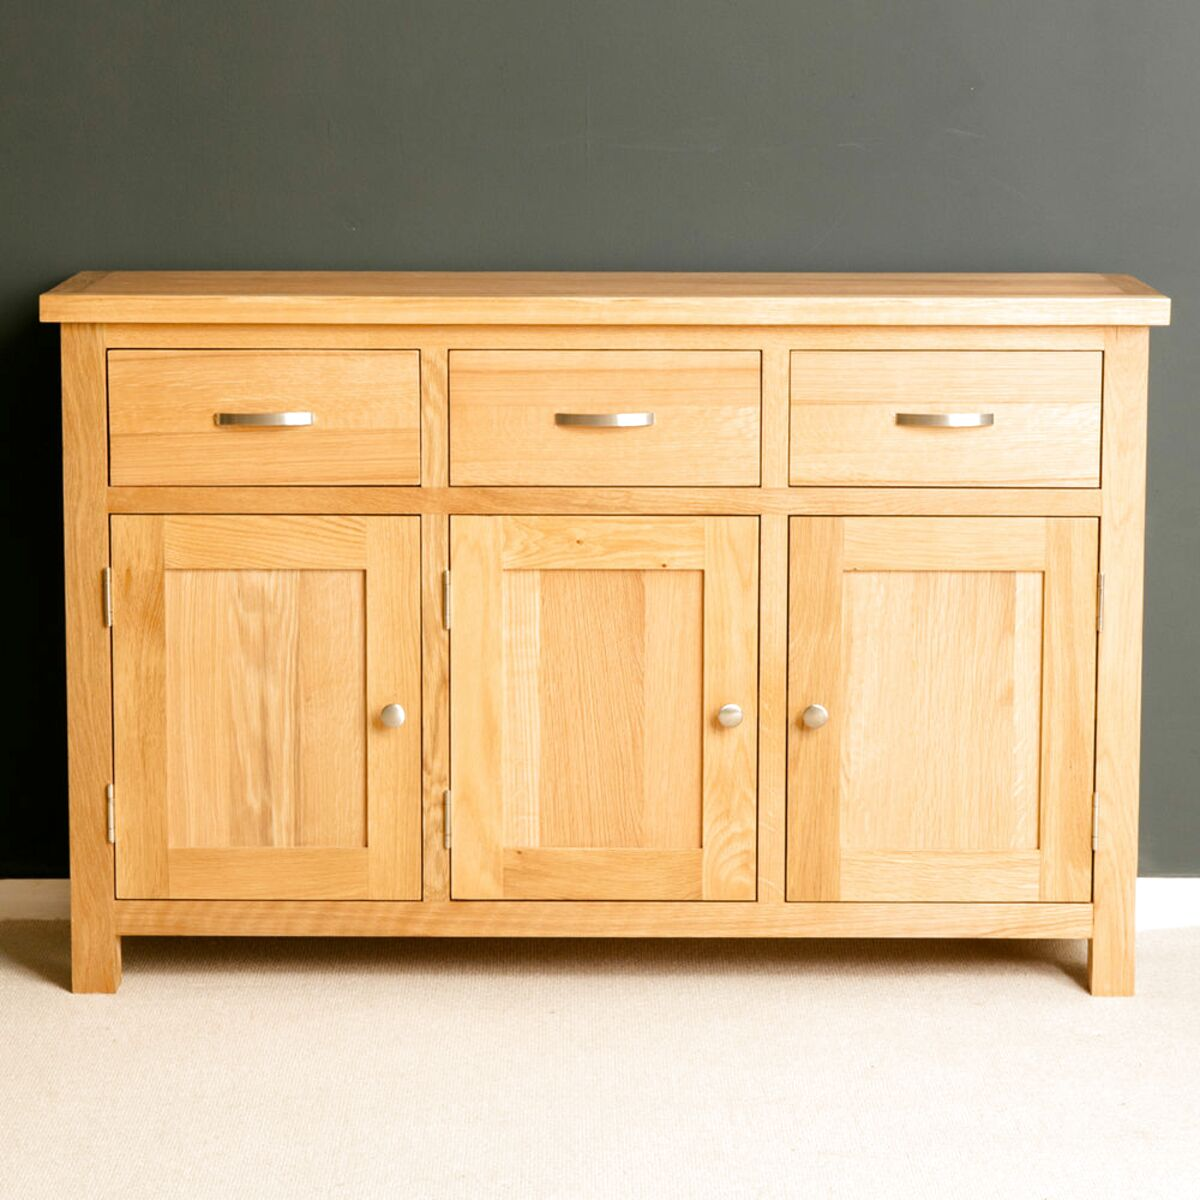 oak sideboards for sale